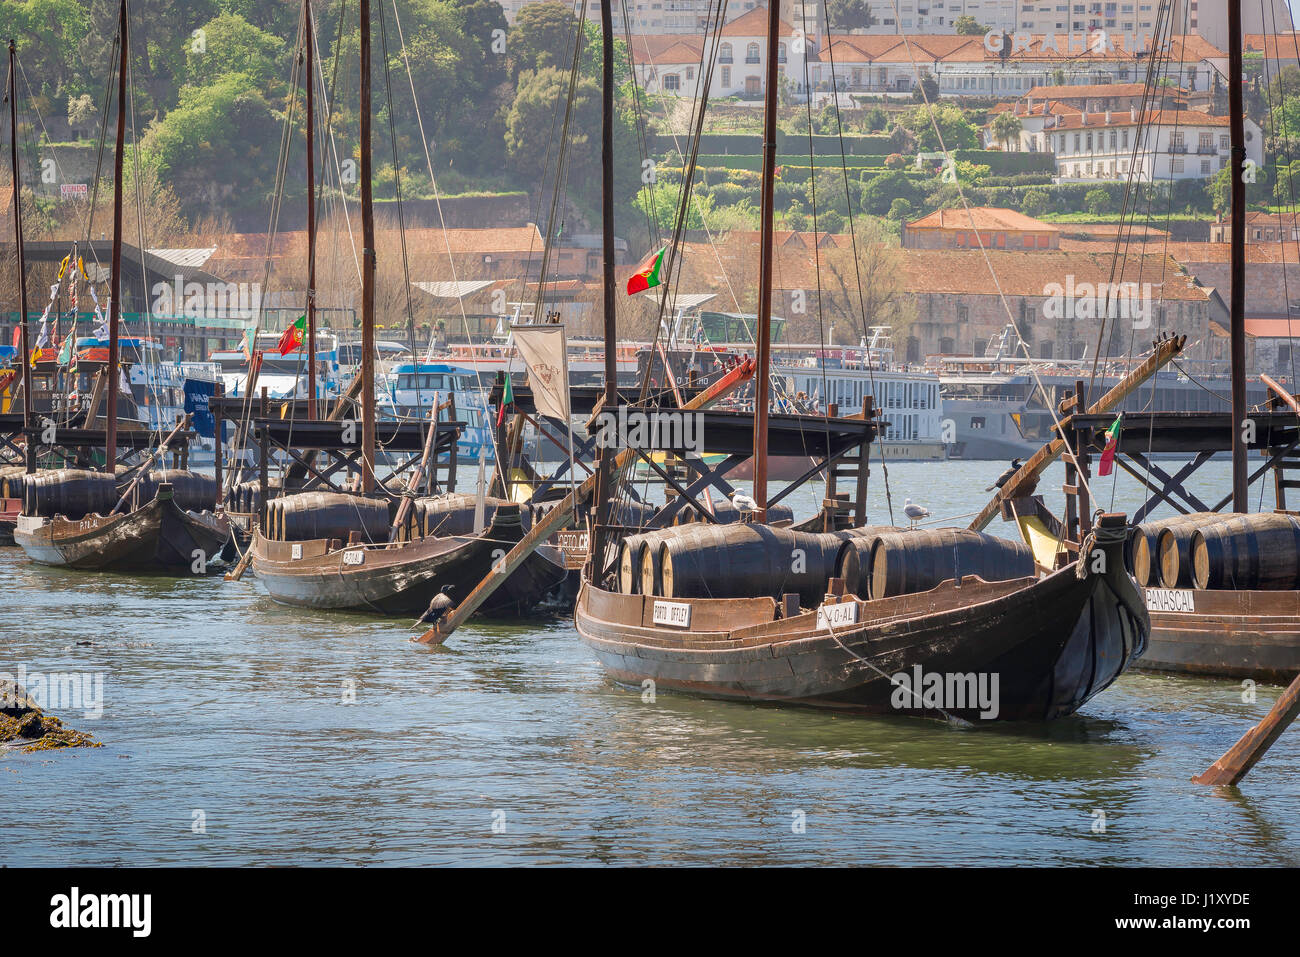 Rabelo boat Porto, traditional rabelo boats on the Rio Douro moored along the waterfront in Porto, Europe. Stock Photo